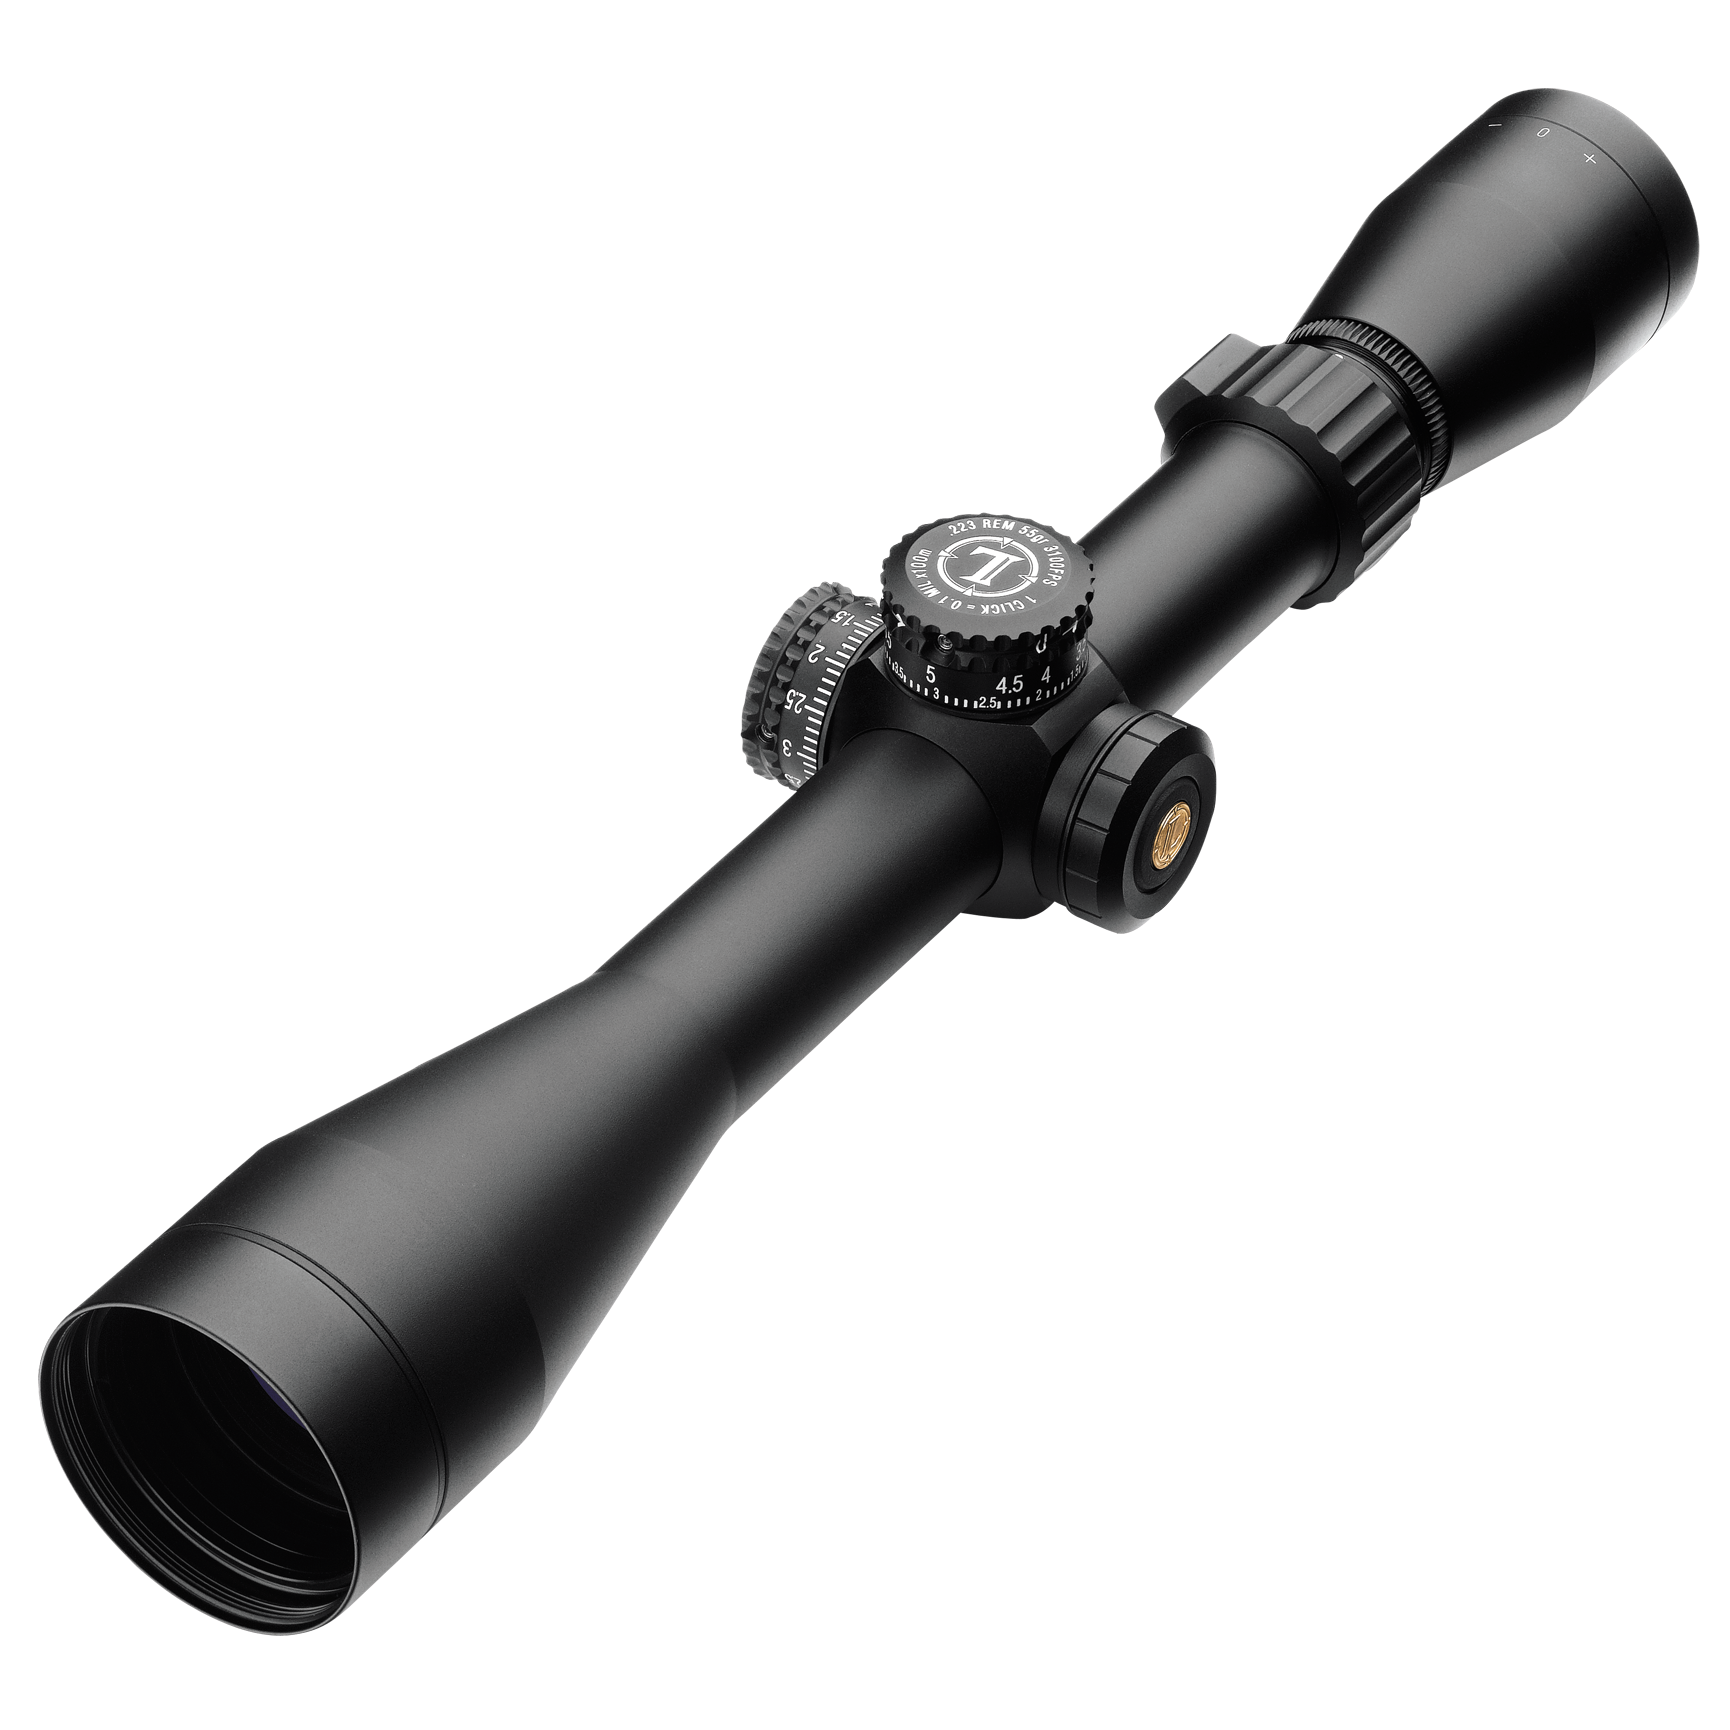 LEUPOLD-MARK-AR-MOD-1-3-9X40MM-FIREDOT-G-TMR-ILLUMINATED-RETICLE-MATTE_mararmod1-3-9×40-large.png